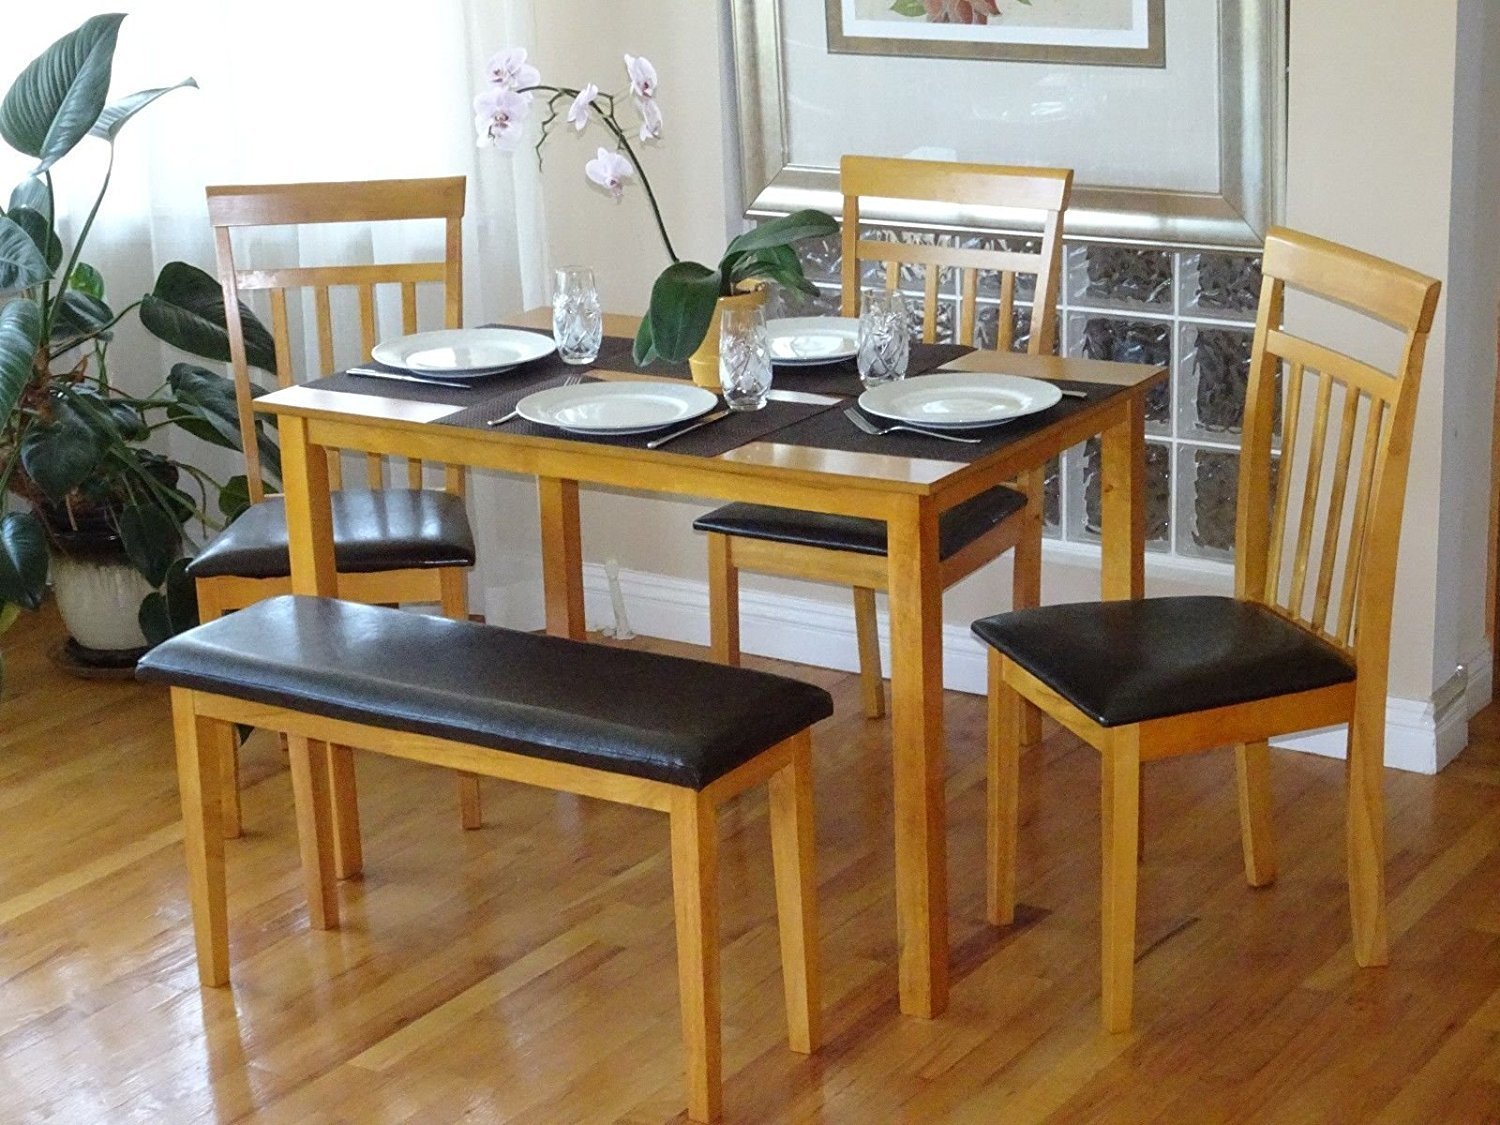 Rattan Wicker Furniture Dining Kitchen Solid Wooden Bench Stained Padded Seat Classic Design in Maple Finish by Rattan Wicker Furniture (Image #3)